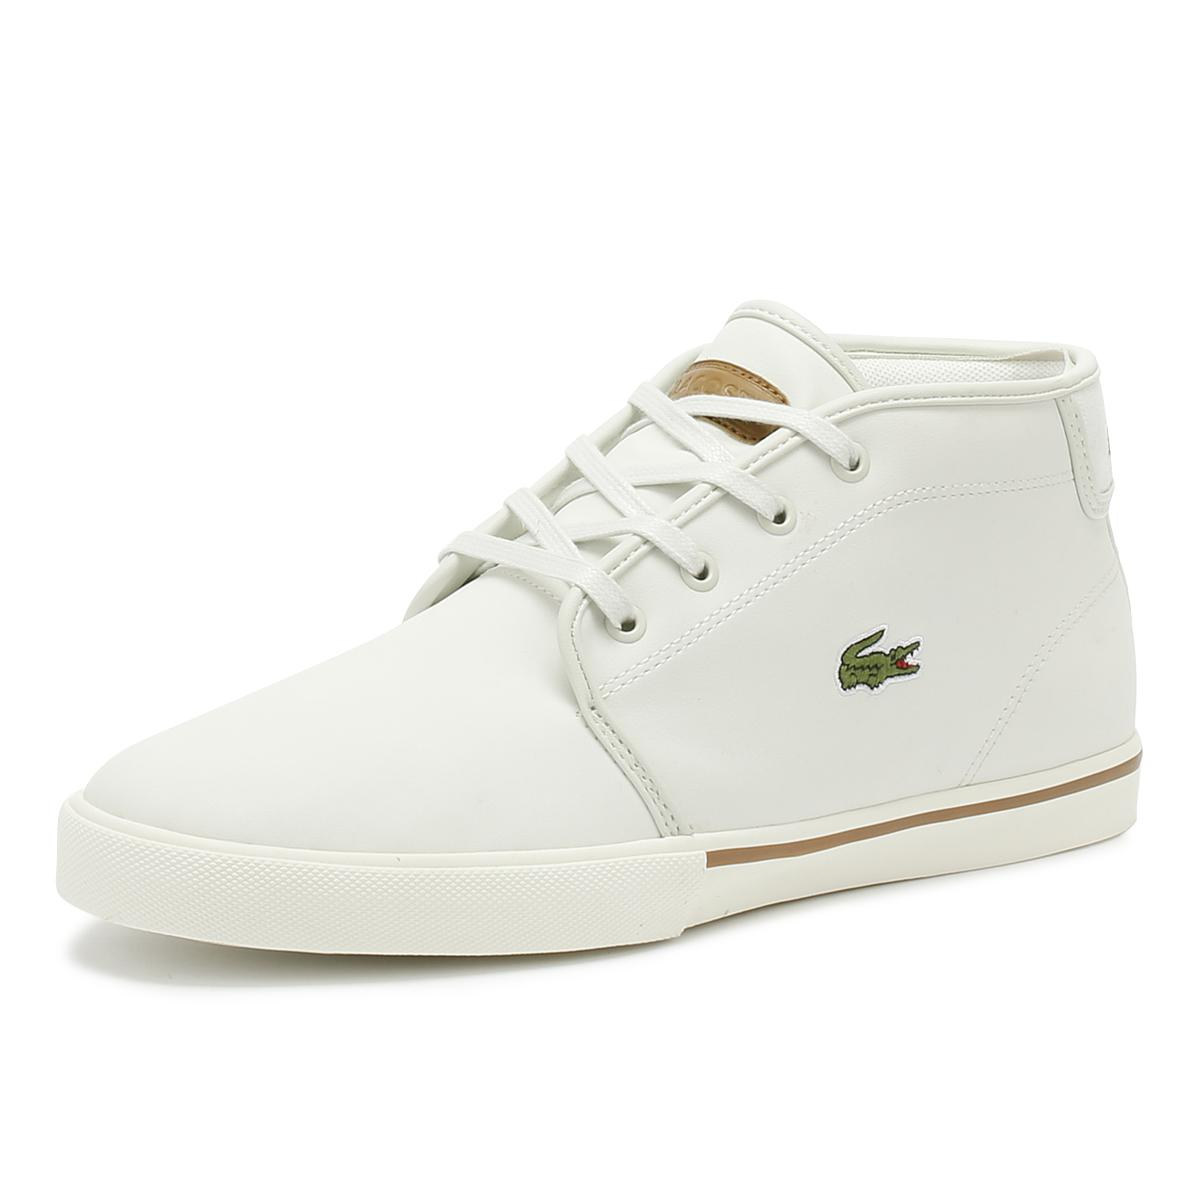 7ce481112 Lacoste - Ampthill 119 1 Mens Off White Trainers for Men - Lyst. View  fullscreen